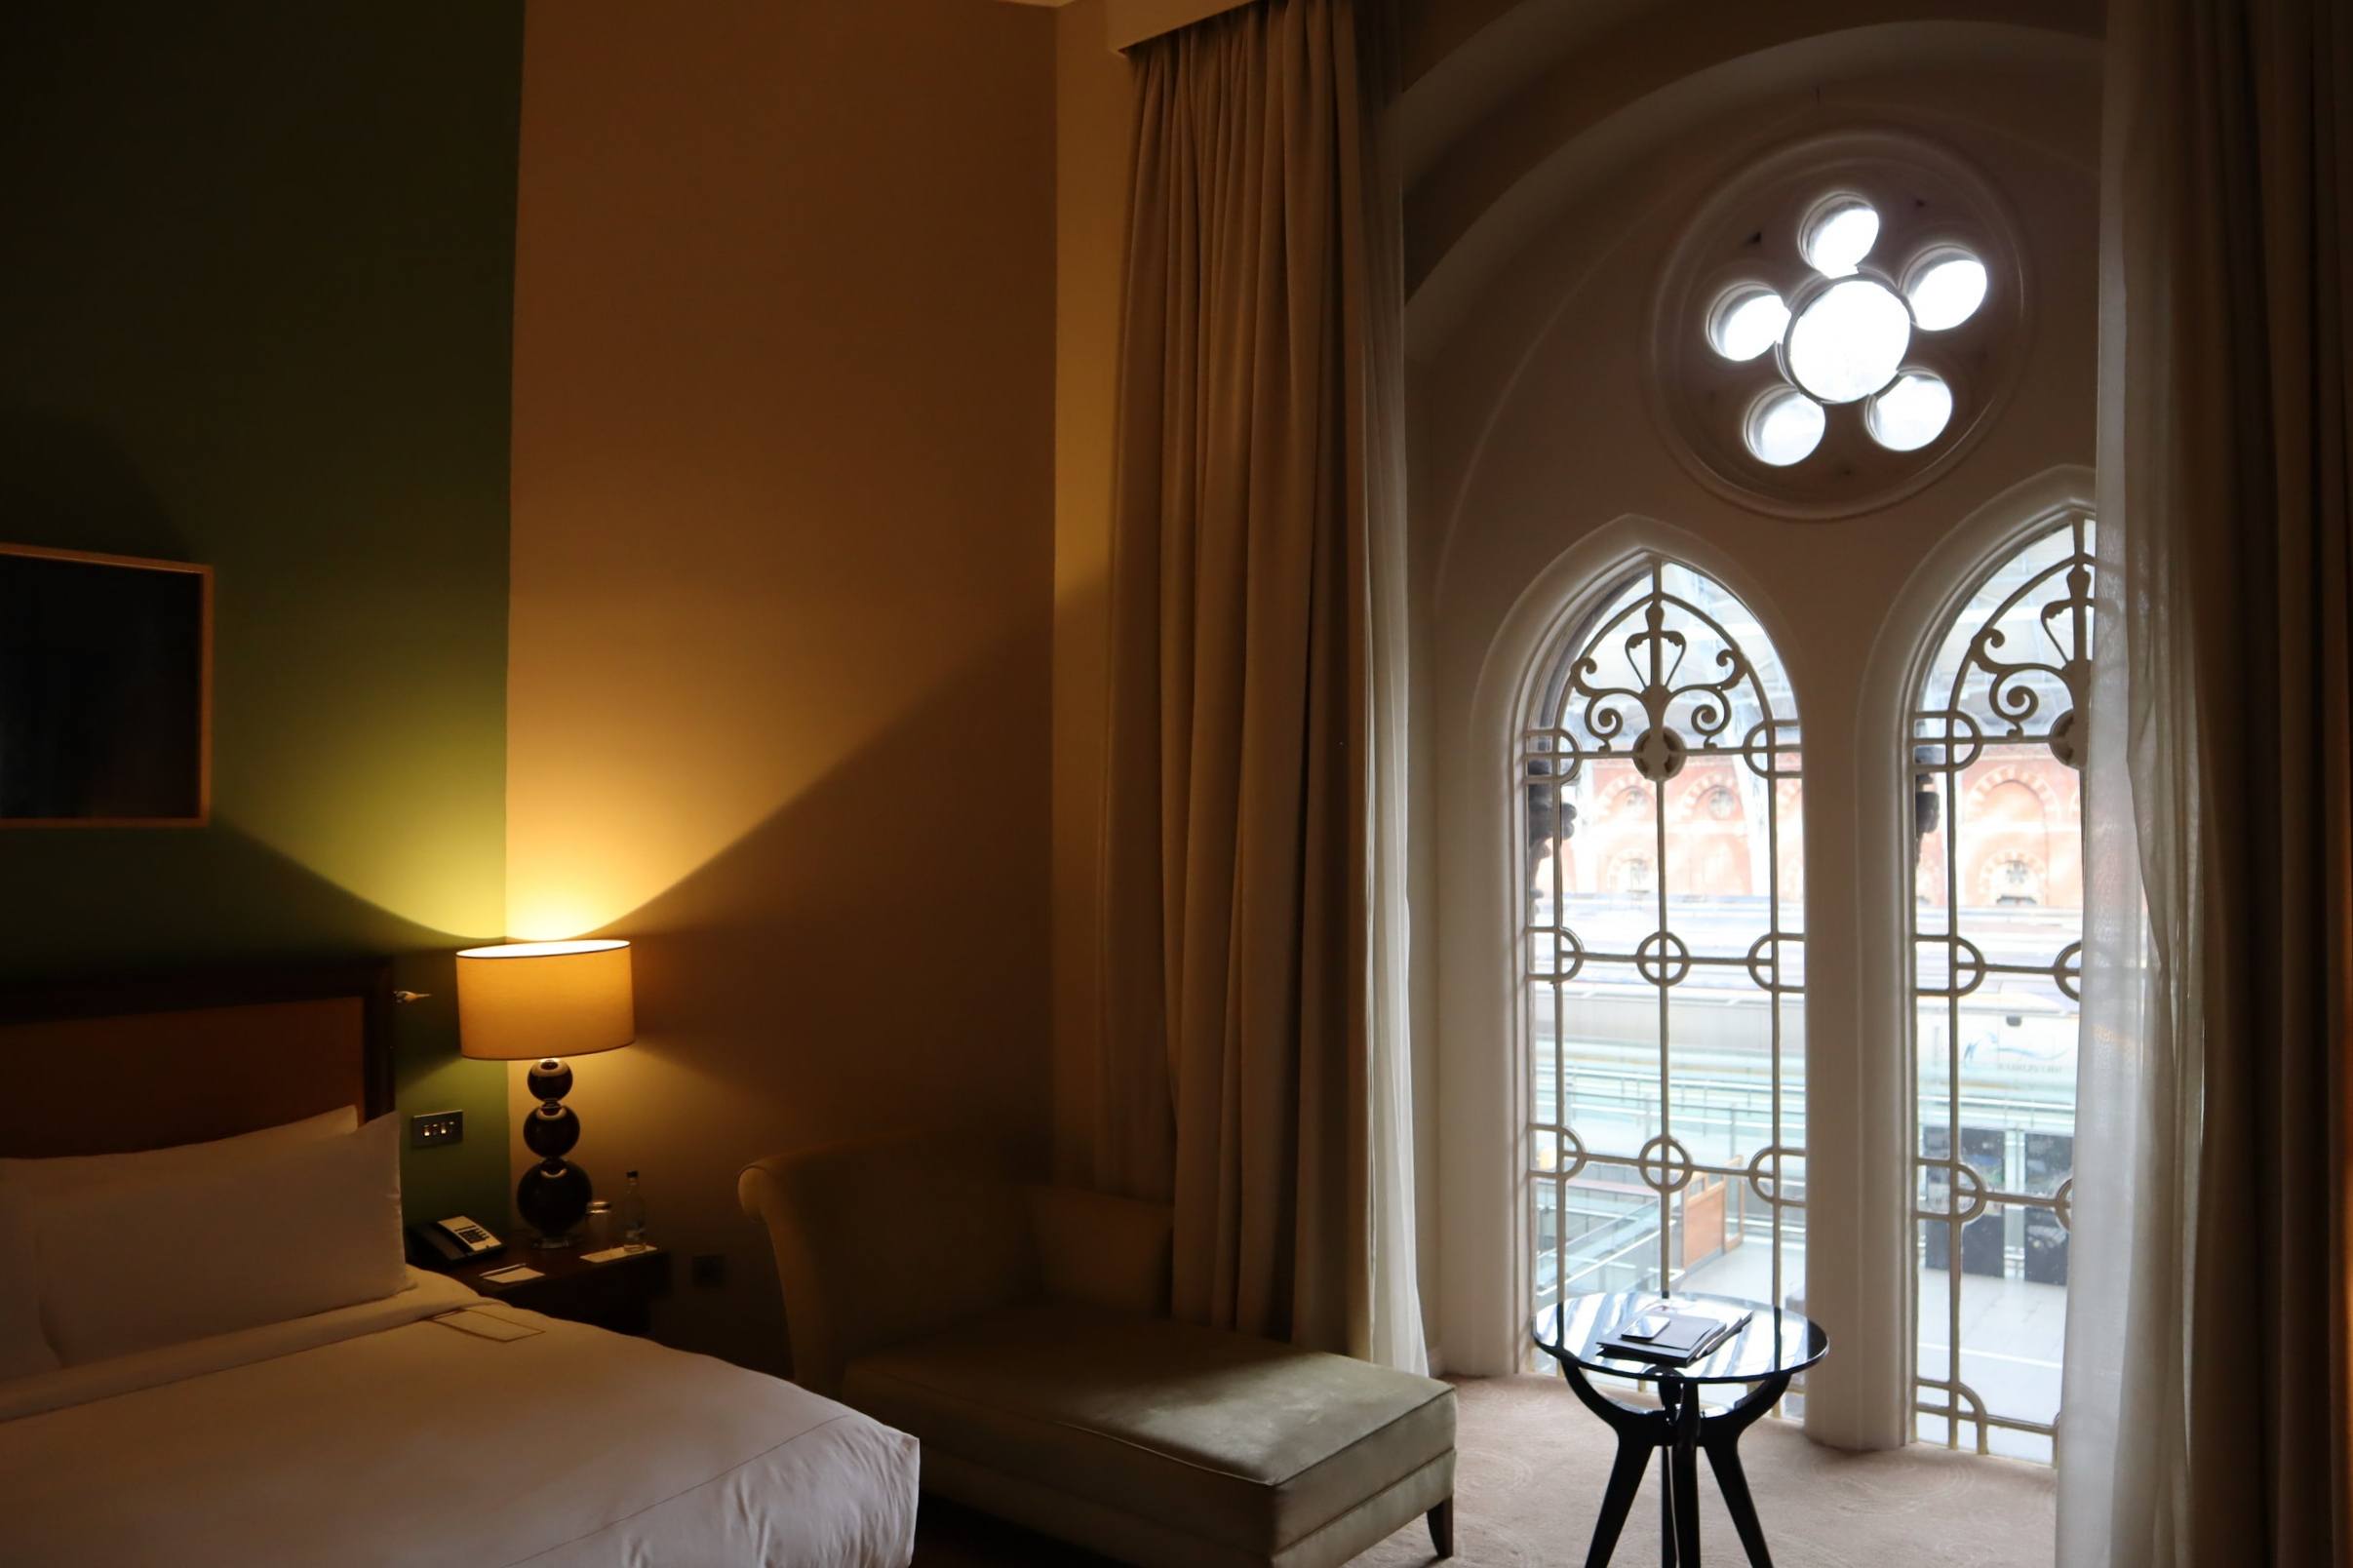 Larger Barlow room at the St. Pancras Renaissance London Hotel, with views of the Eurostar trains